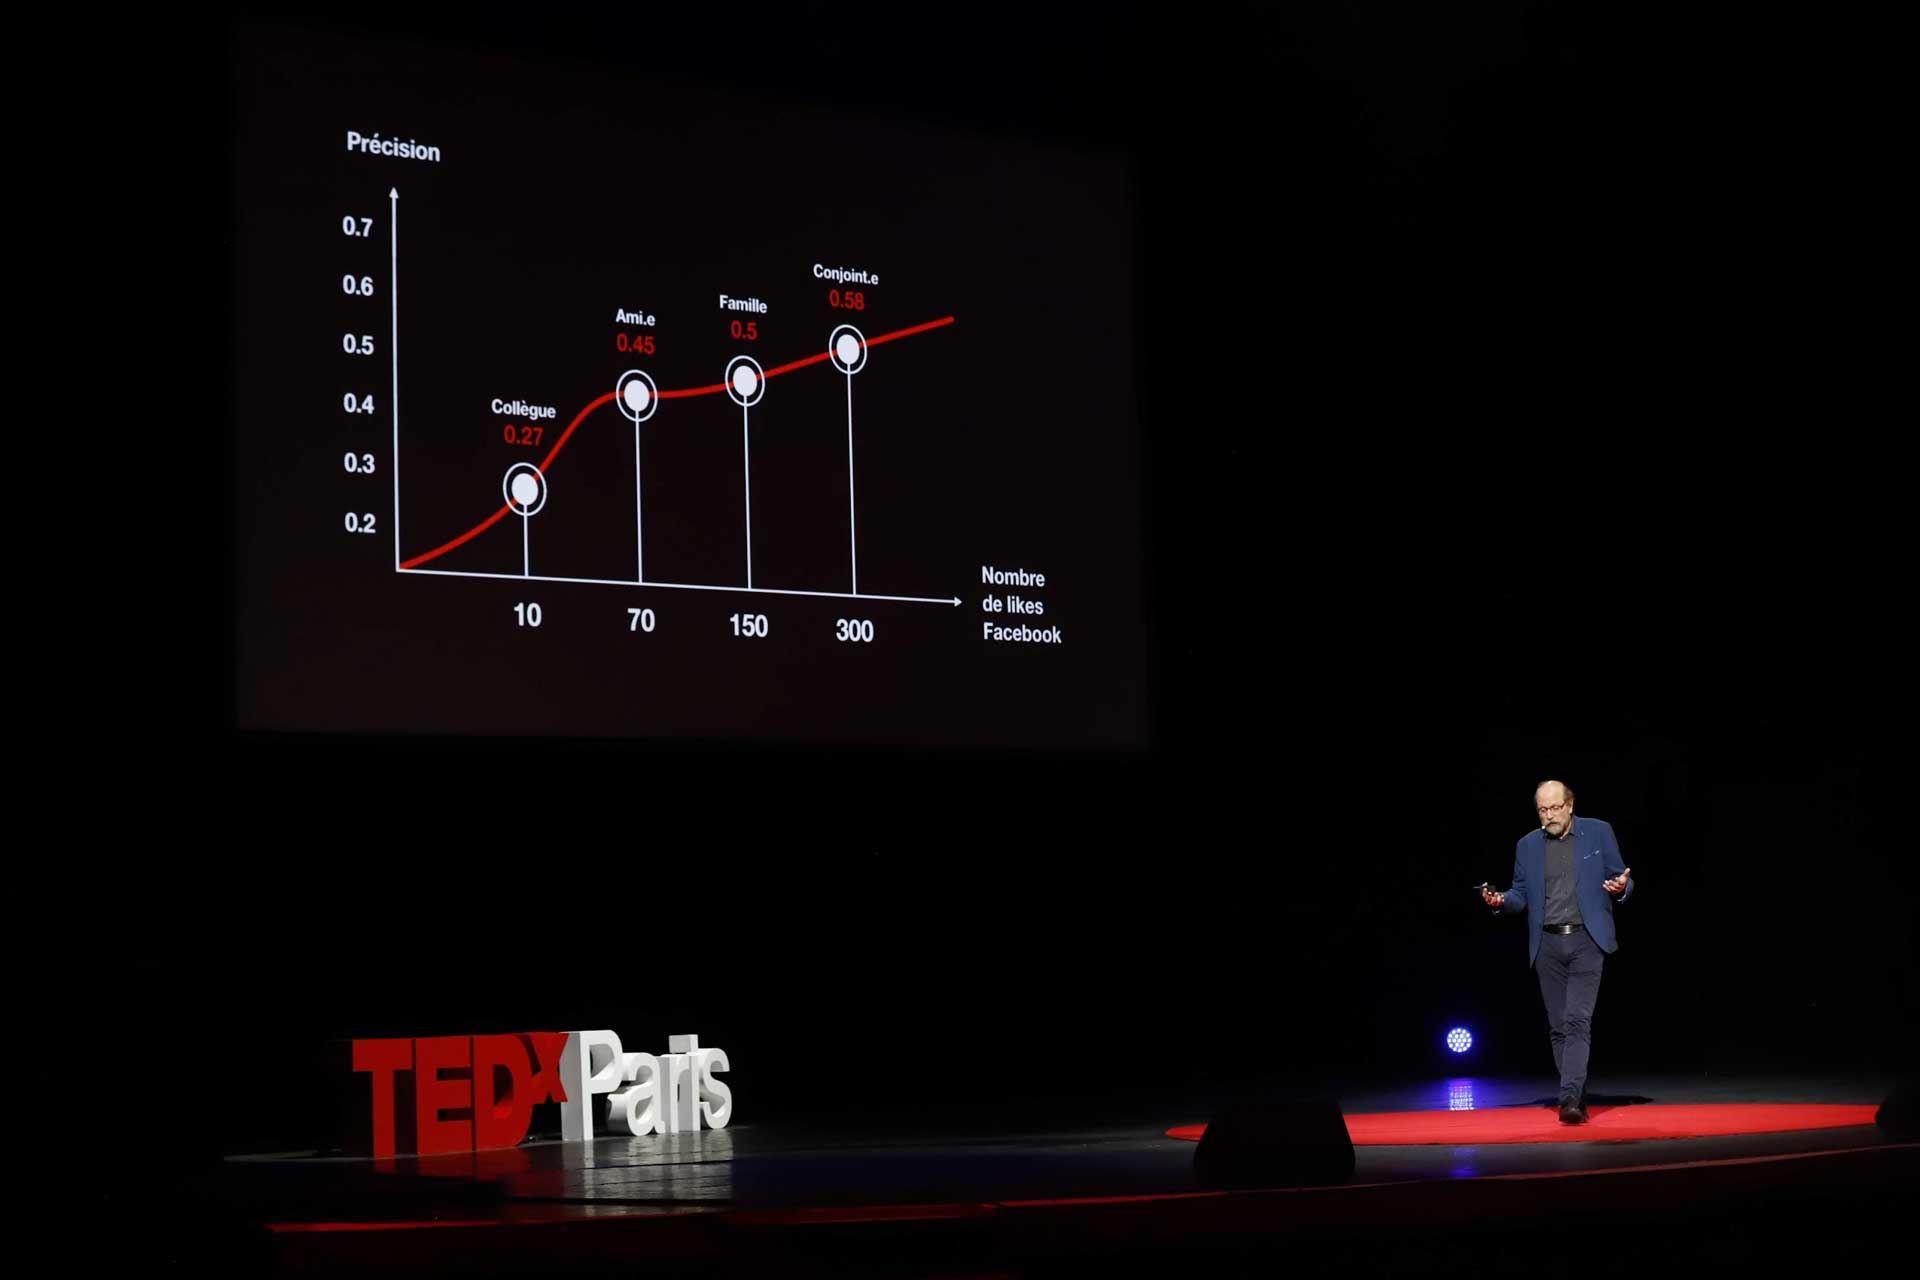 conference-TEDxParis-2018-6.jpg